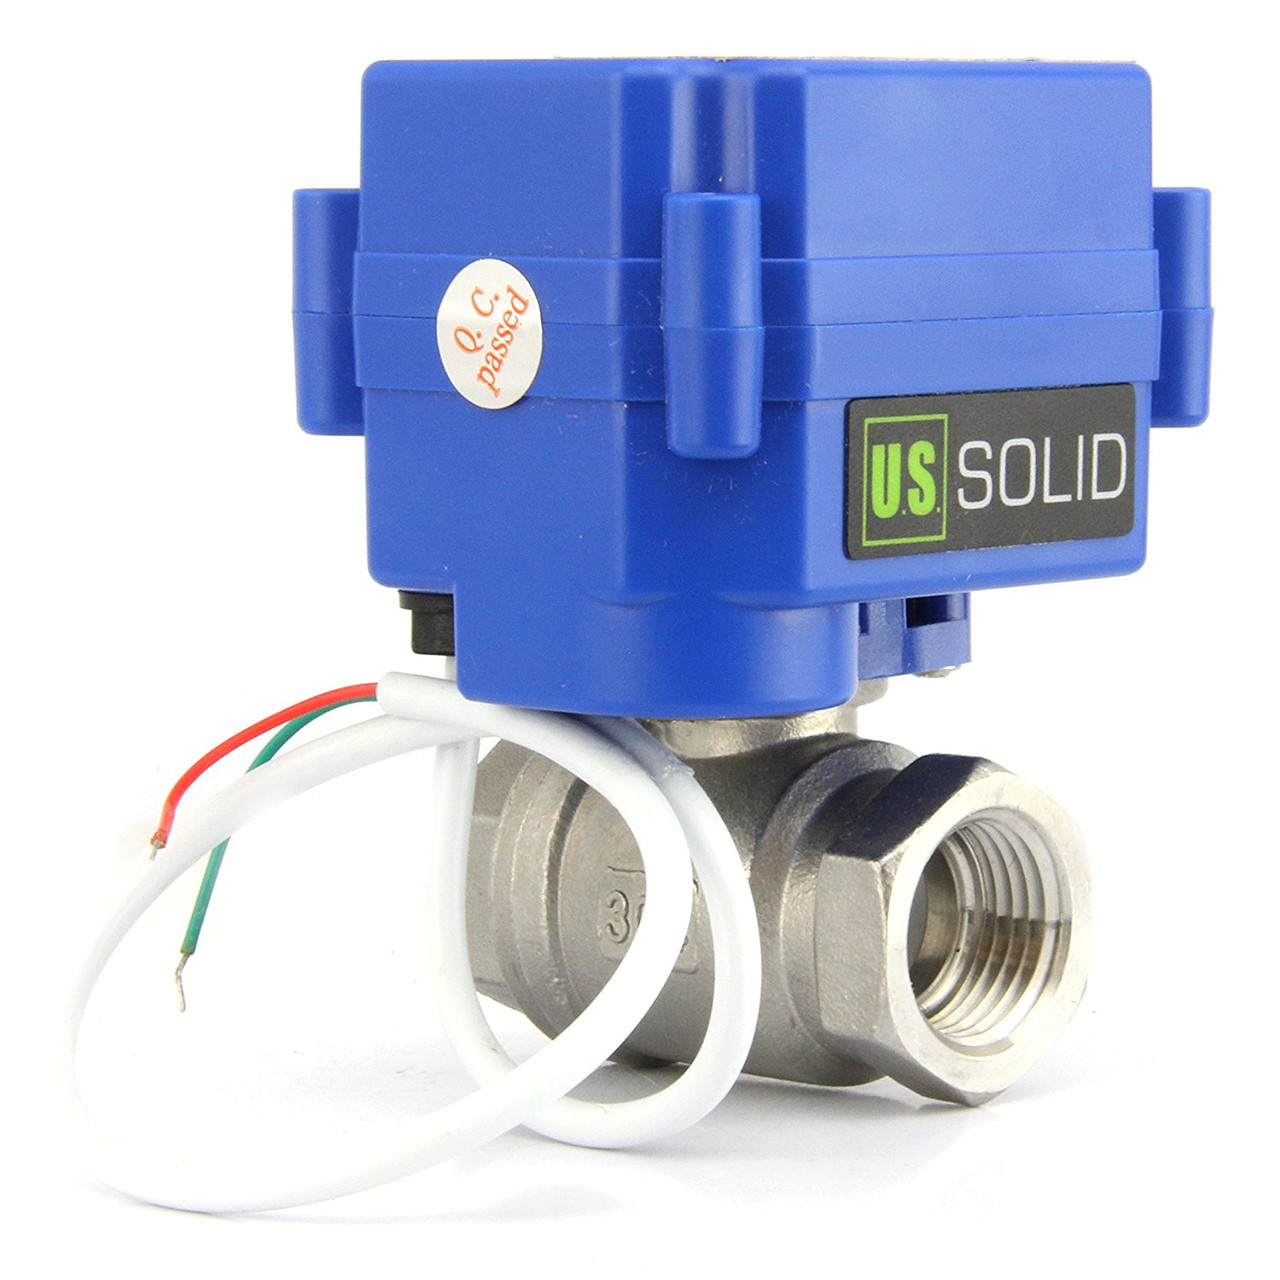 """U.S. Solid Motorized Ball Valve- 1/4"""" Stainless Steel Electrical Ball Valve with Full Port, 85-265 V AC, 2 Wire Auto Return"""